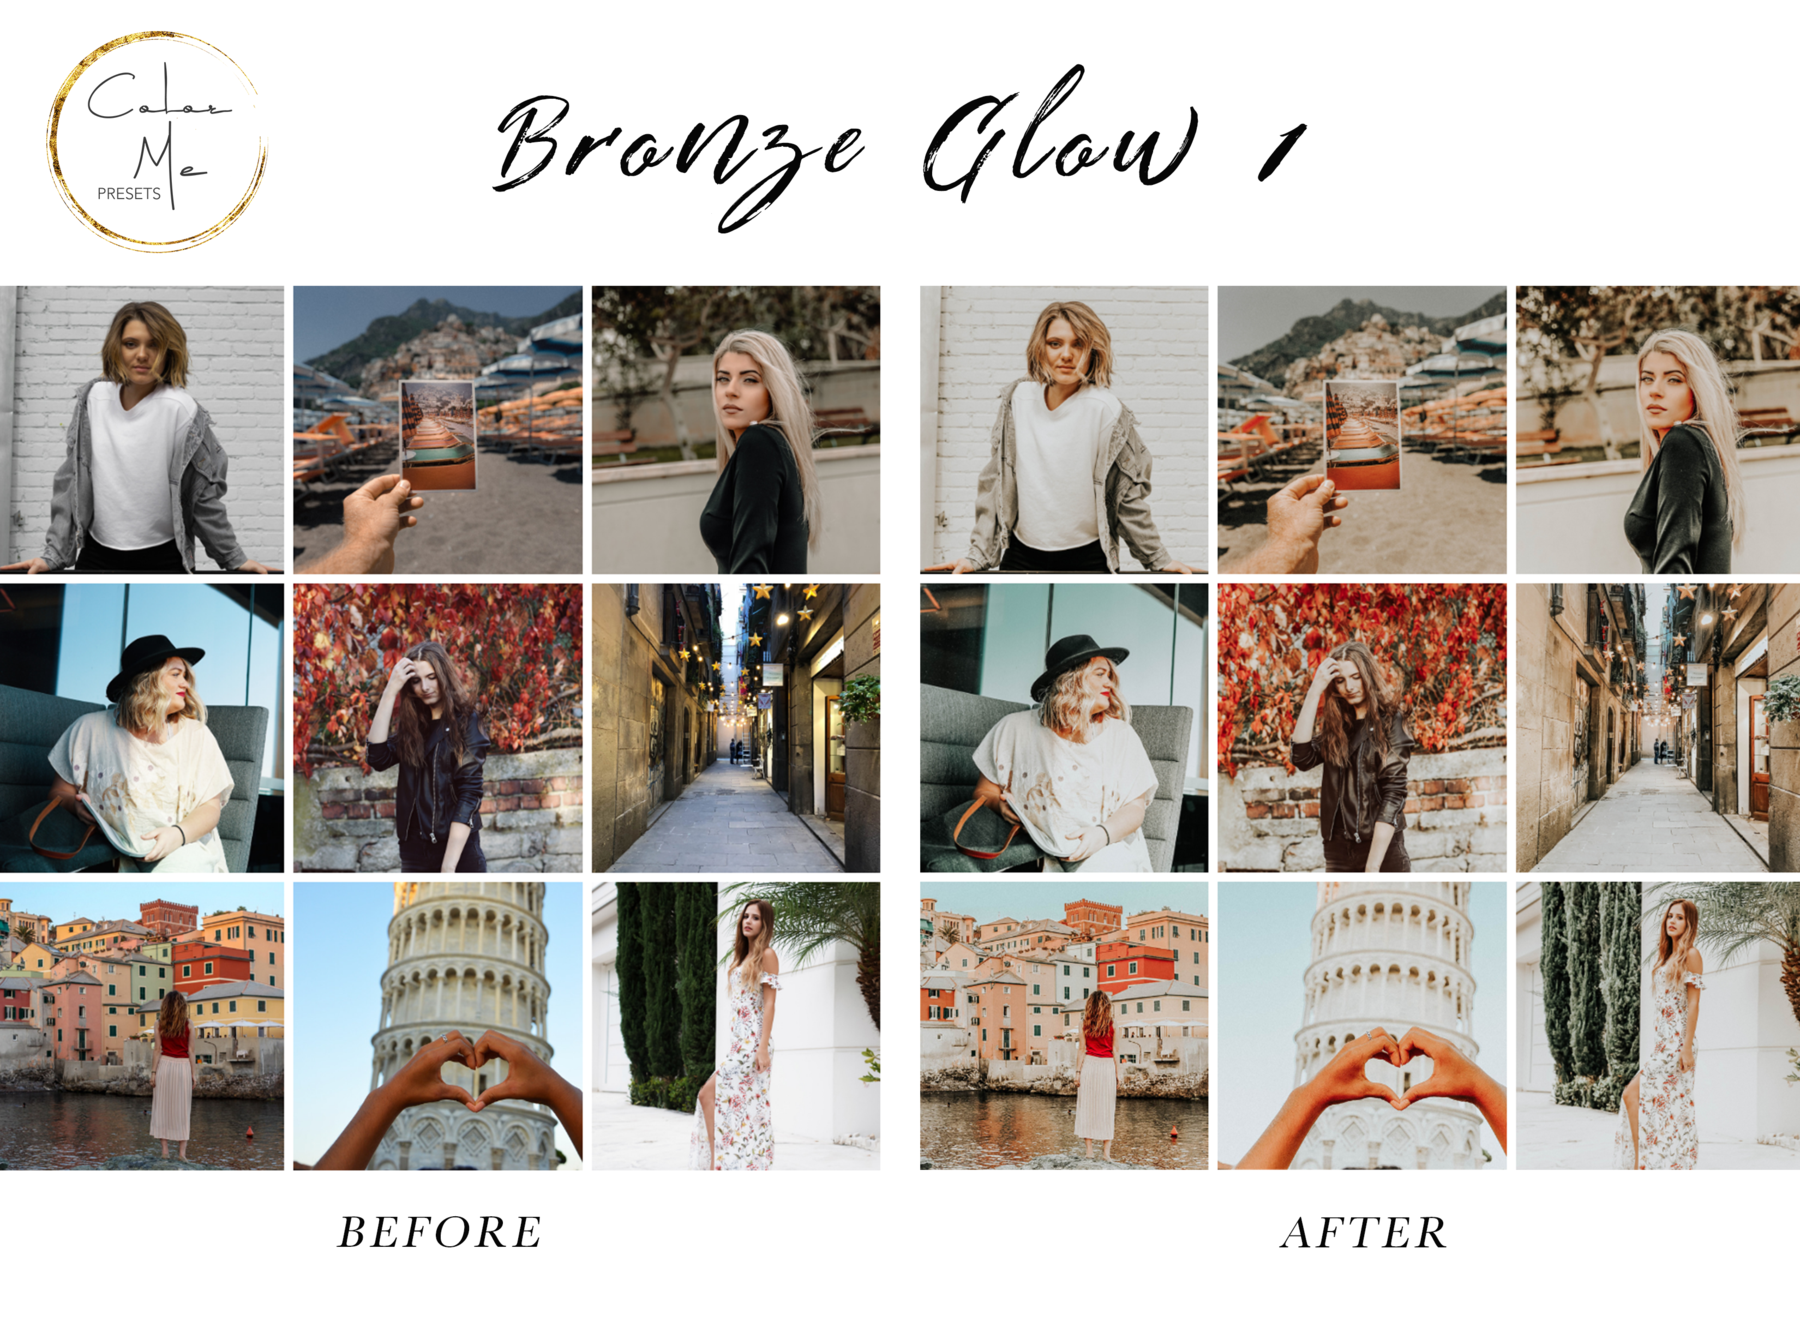 Instagram Presets Feed Màu Đẹp Dành Cho Lightroom Mobile – Mobile Lightroom Presets Bronze Glow (DNG)